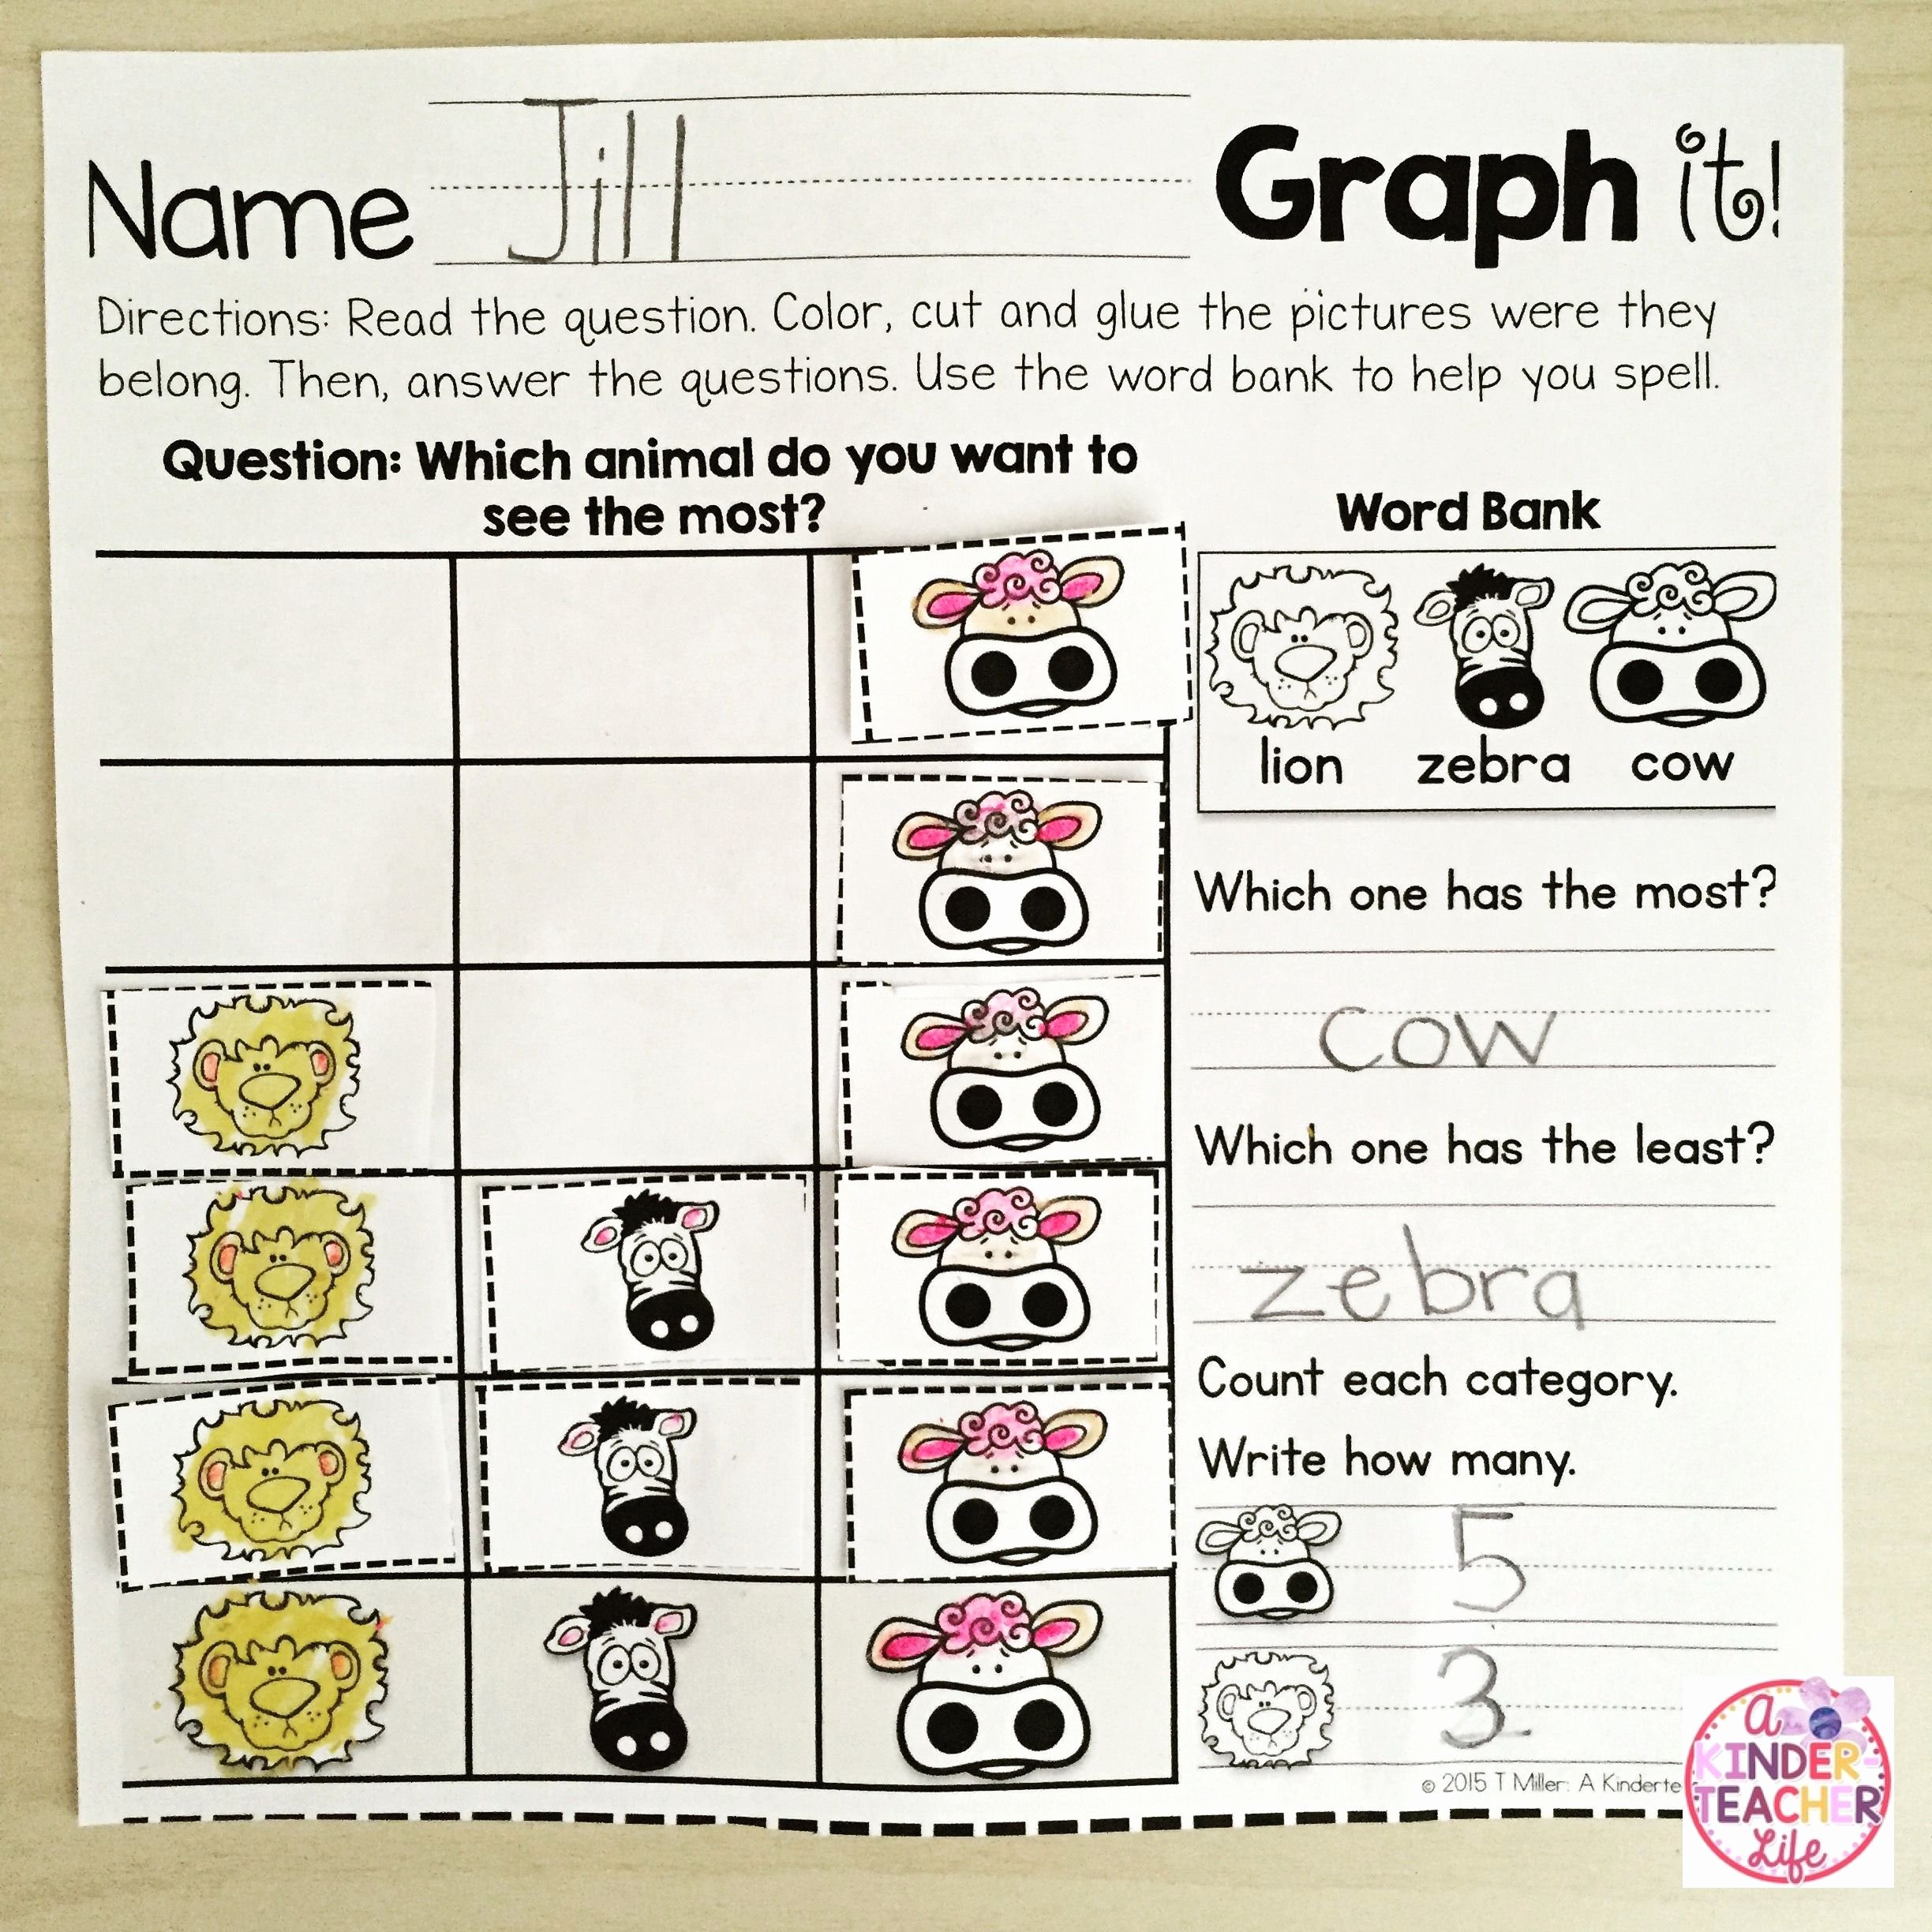 Making Conclusions Geometry Worksheet Answers Unique Survey and Graph A Kinderteacher Life